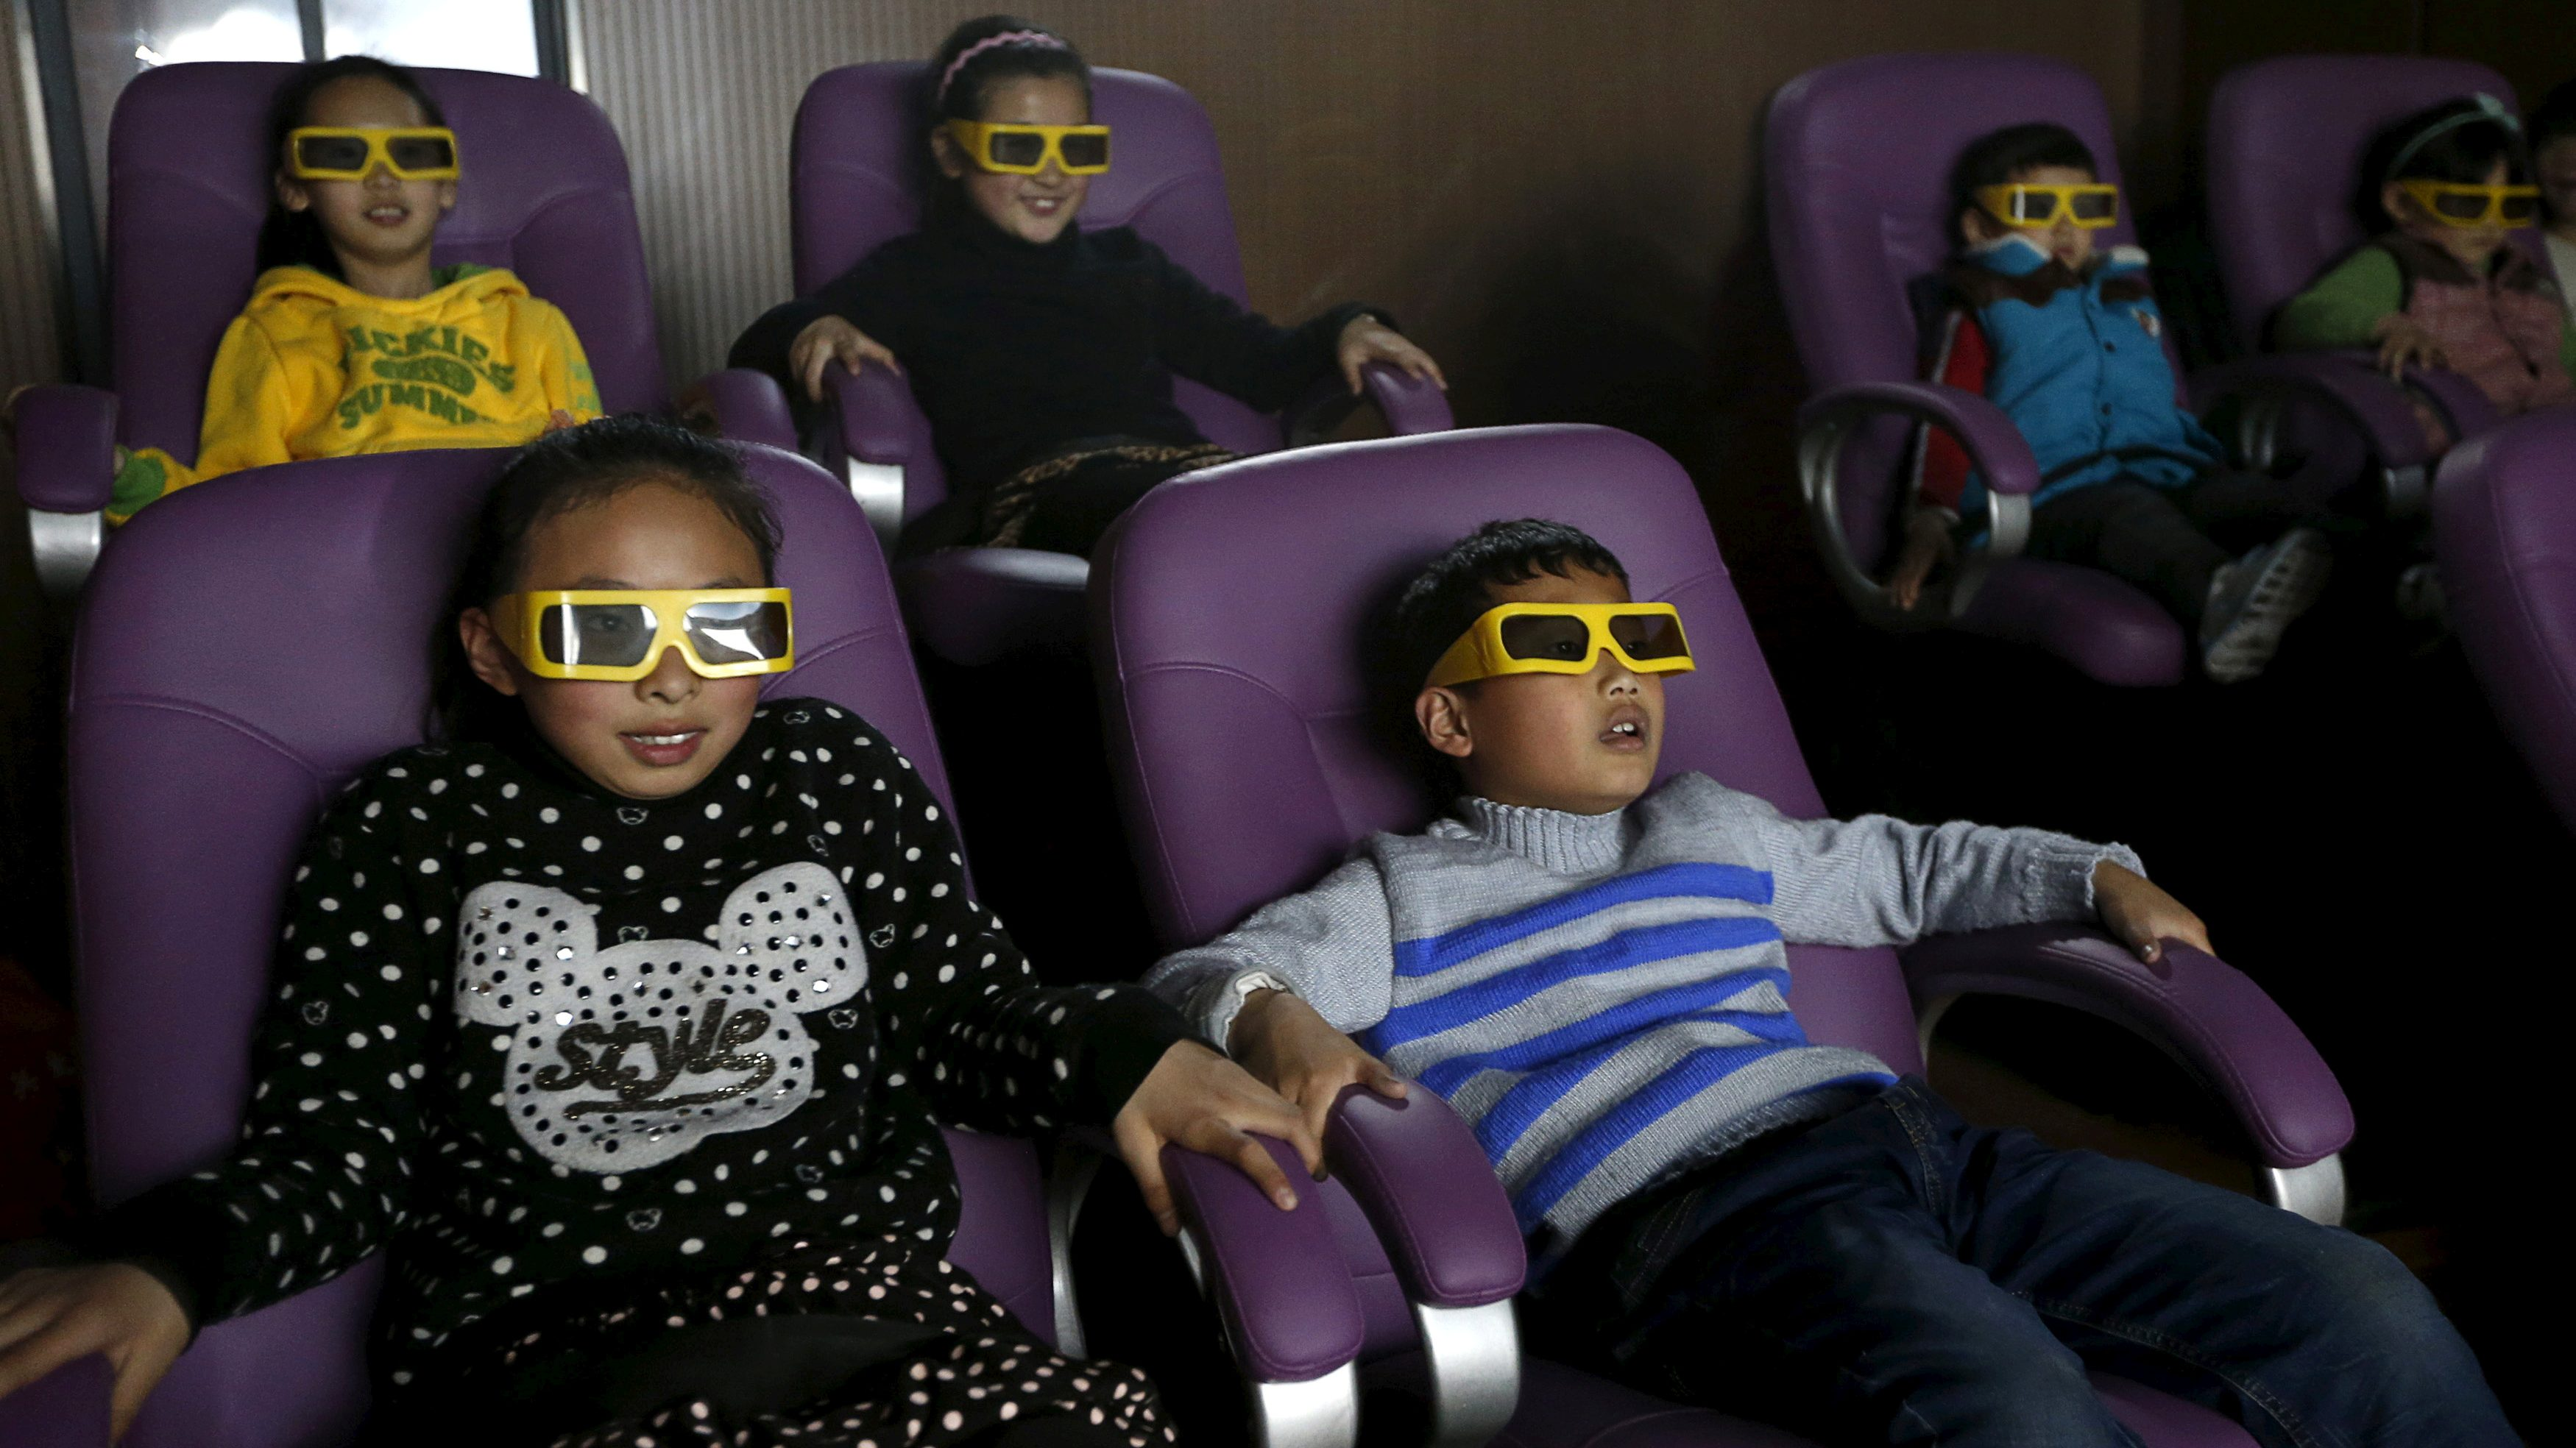 Children watch a 3D war movie at a community theatre in Hefei, Anhui province, March 29, 2015.